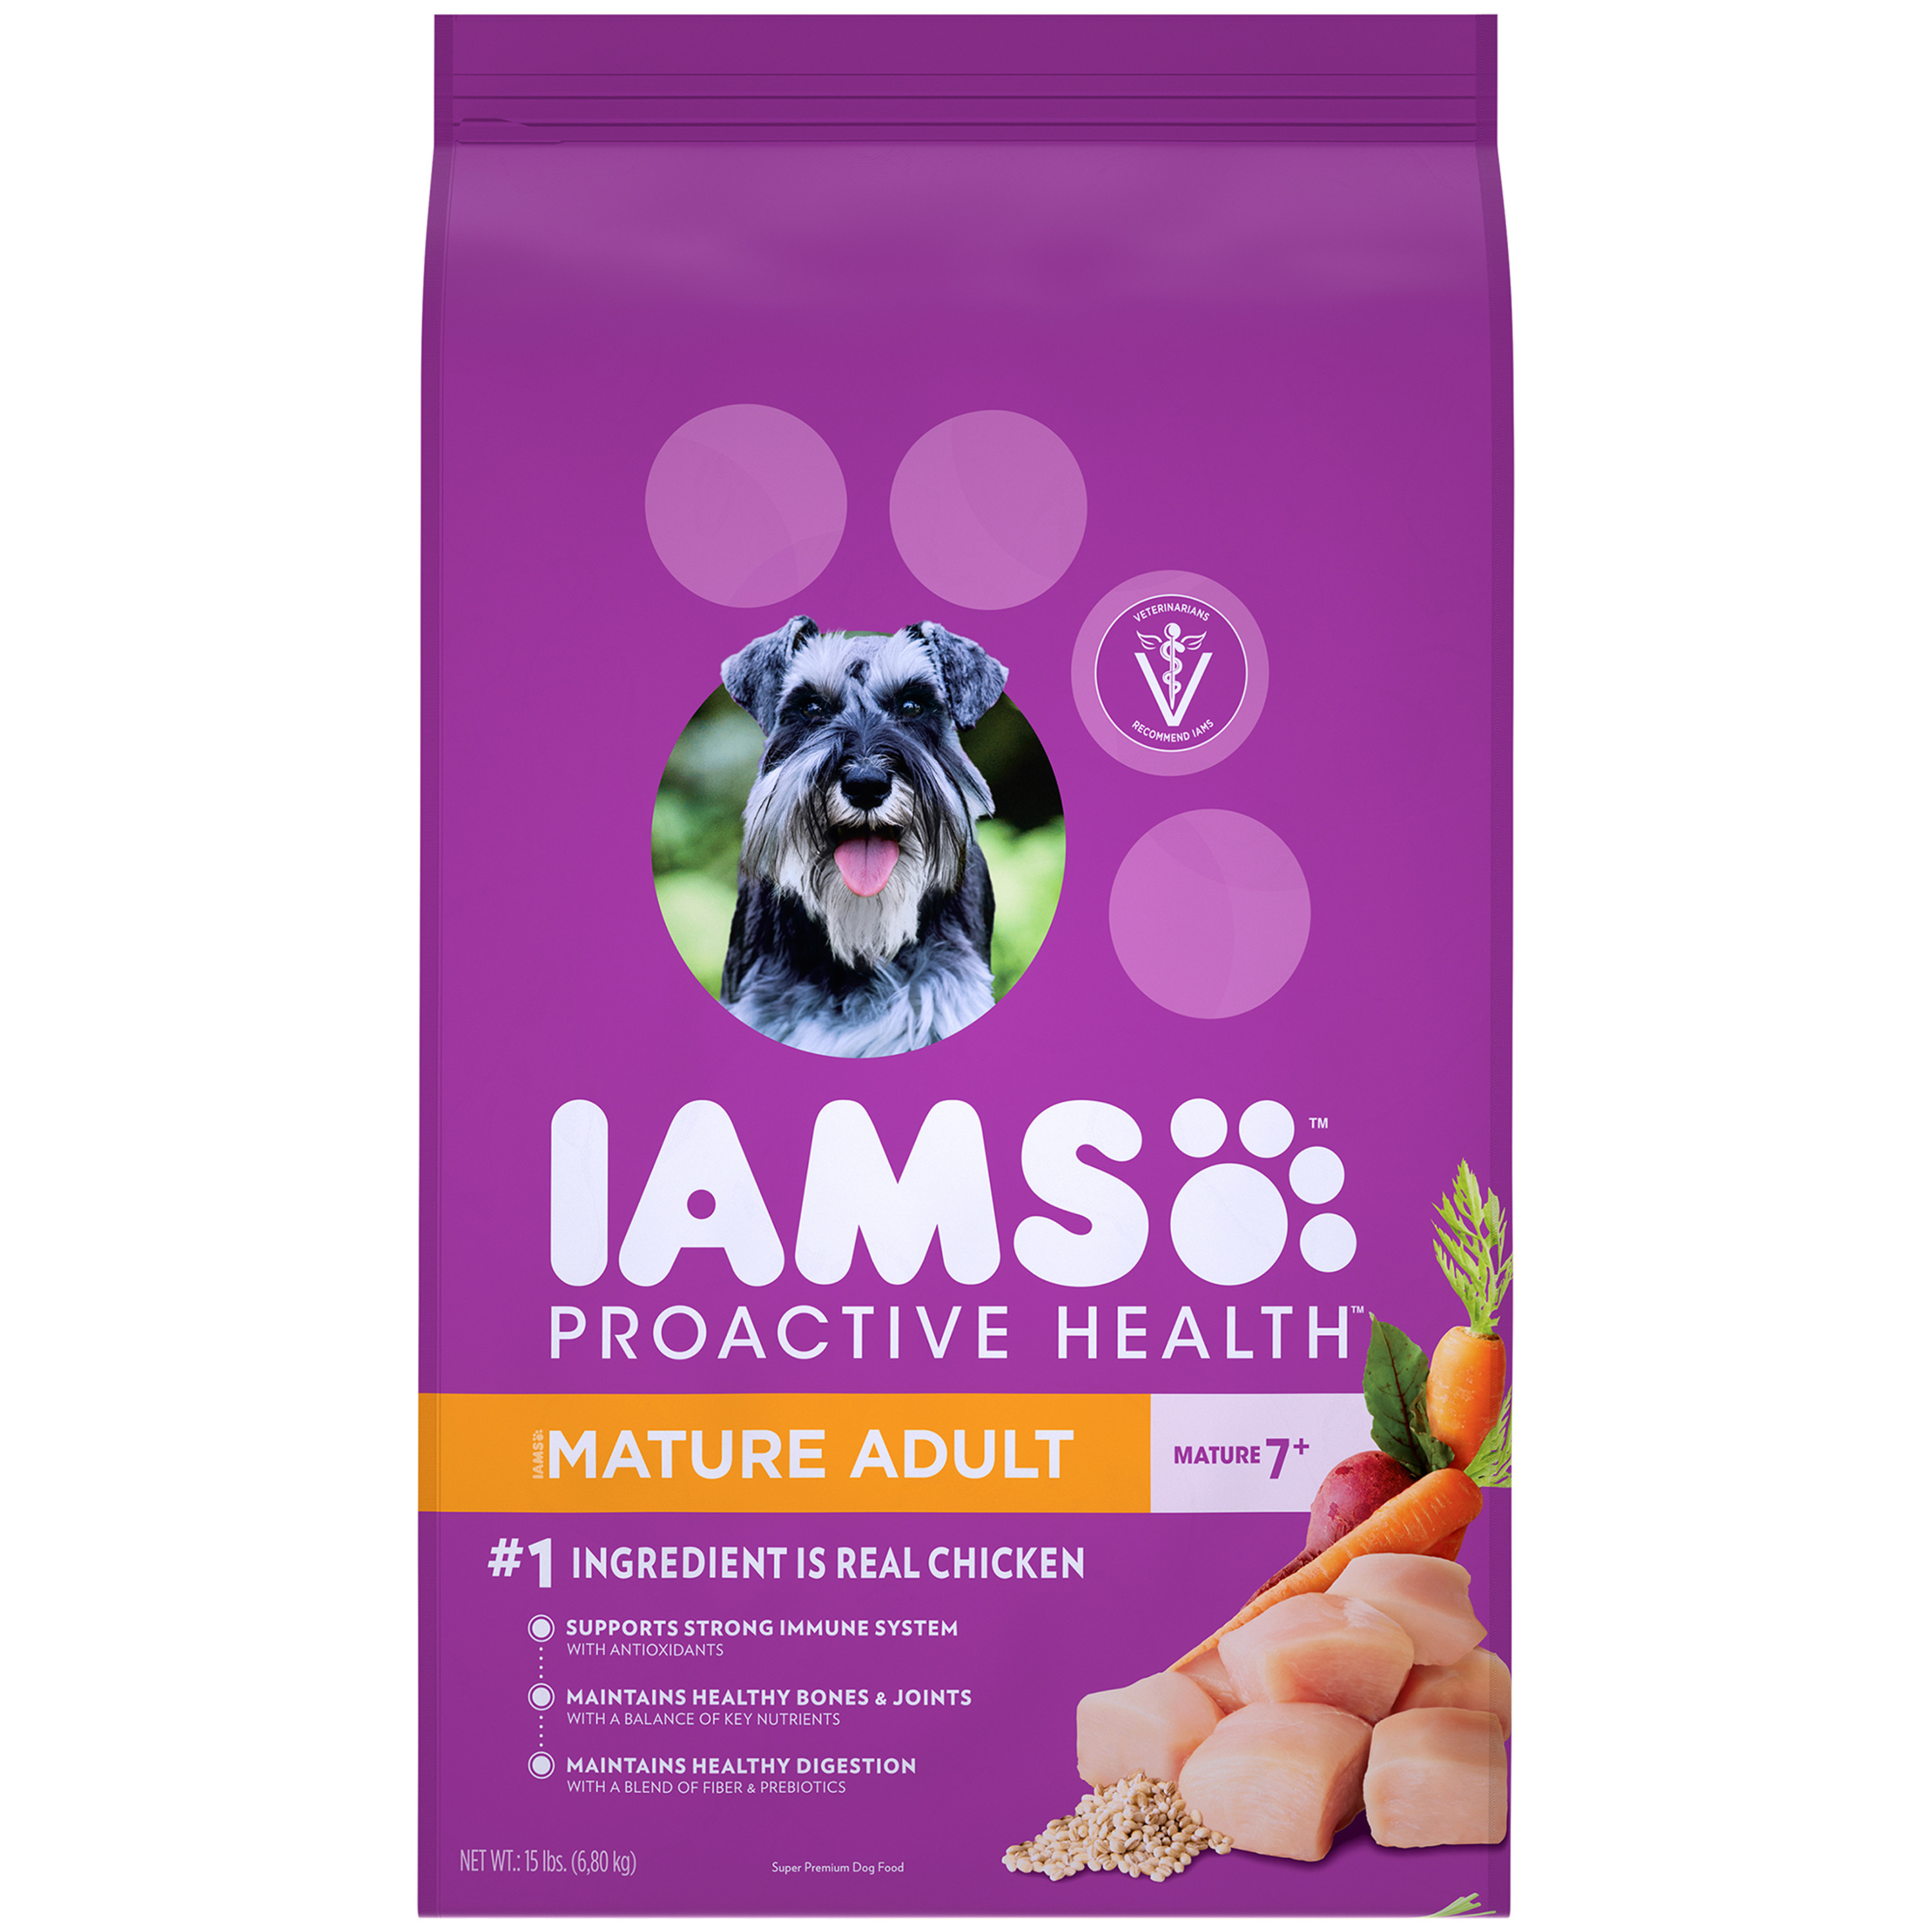 IAMS PROACTIVE HEALTH Mature Adult Dry Dog Food Chicken, 15 lb. Bag by Mars Petcare